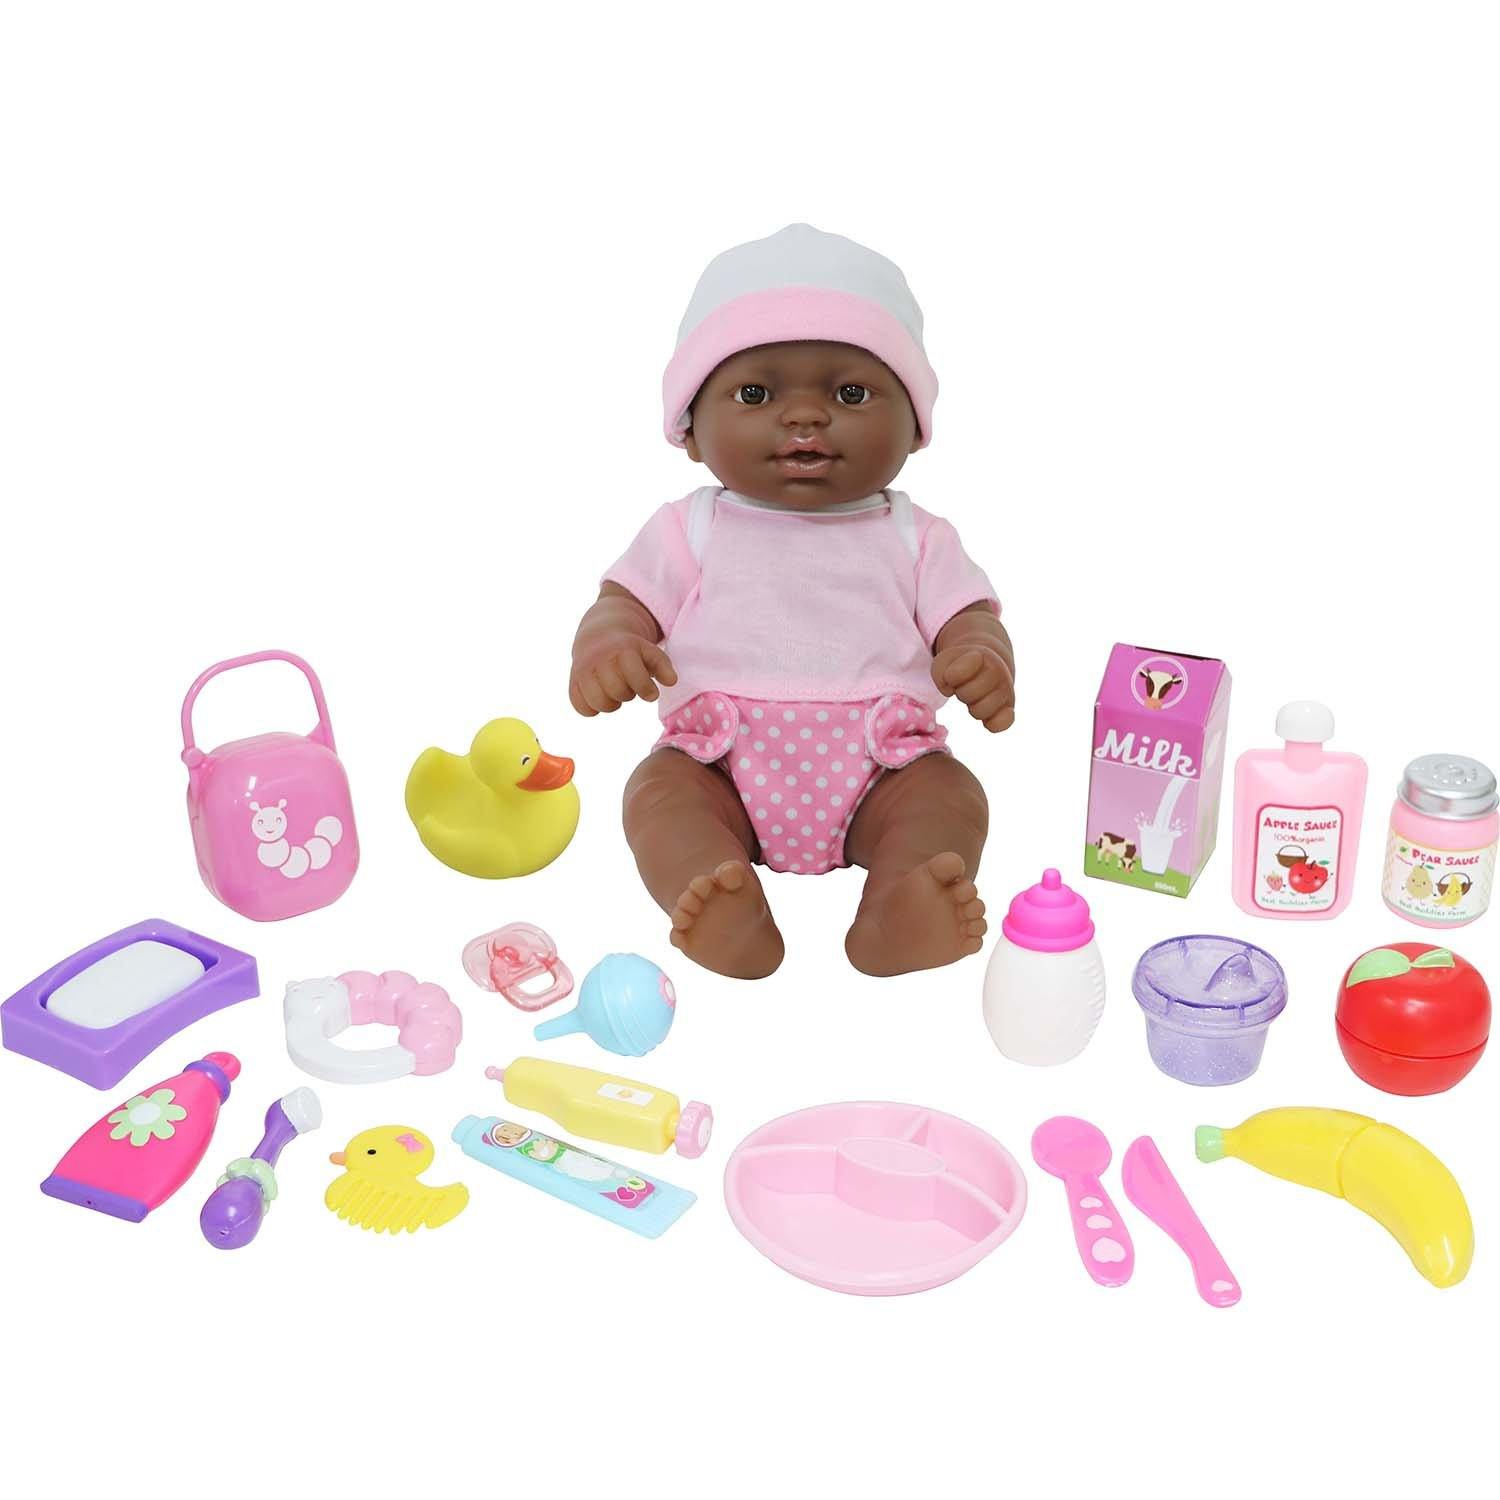 JC Toys, La Newborn Deluxe 12 inches African American Baby Doll All Vinyl Nursery 25 Piece Gift Set